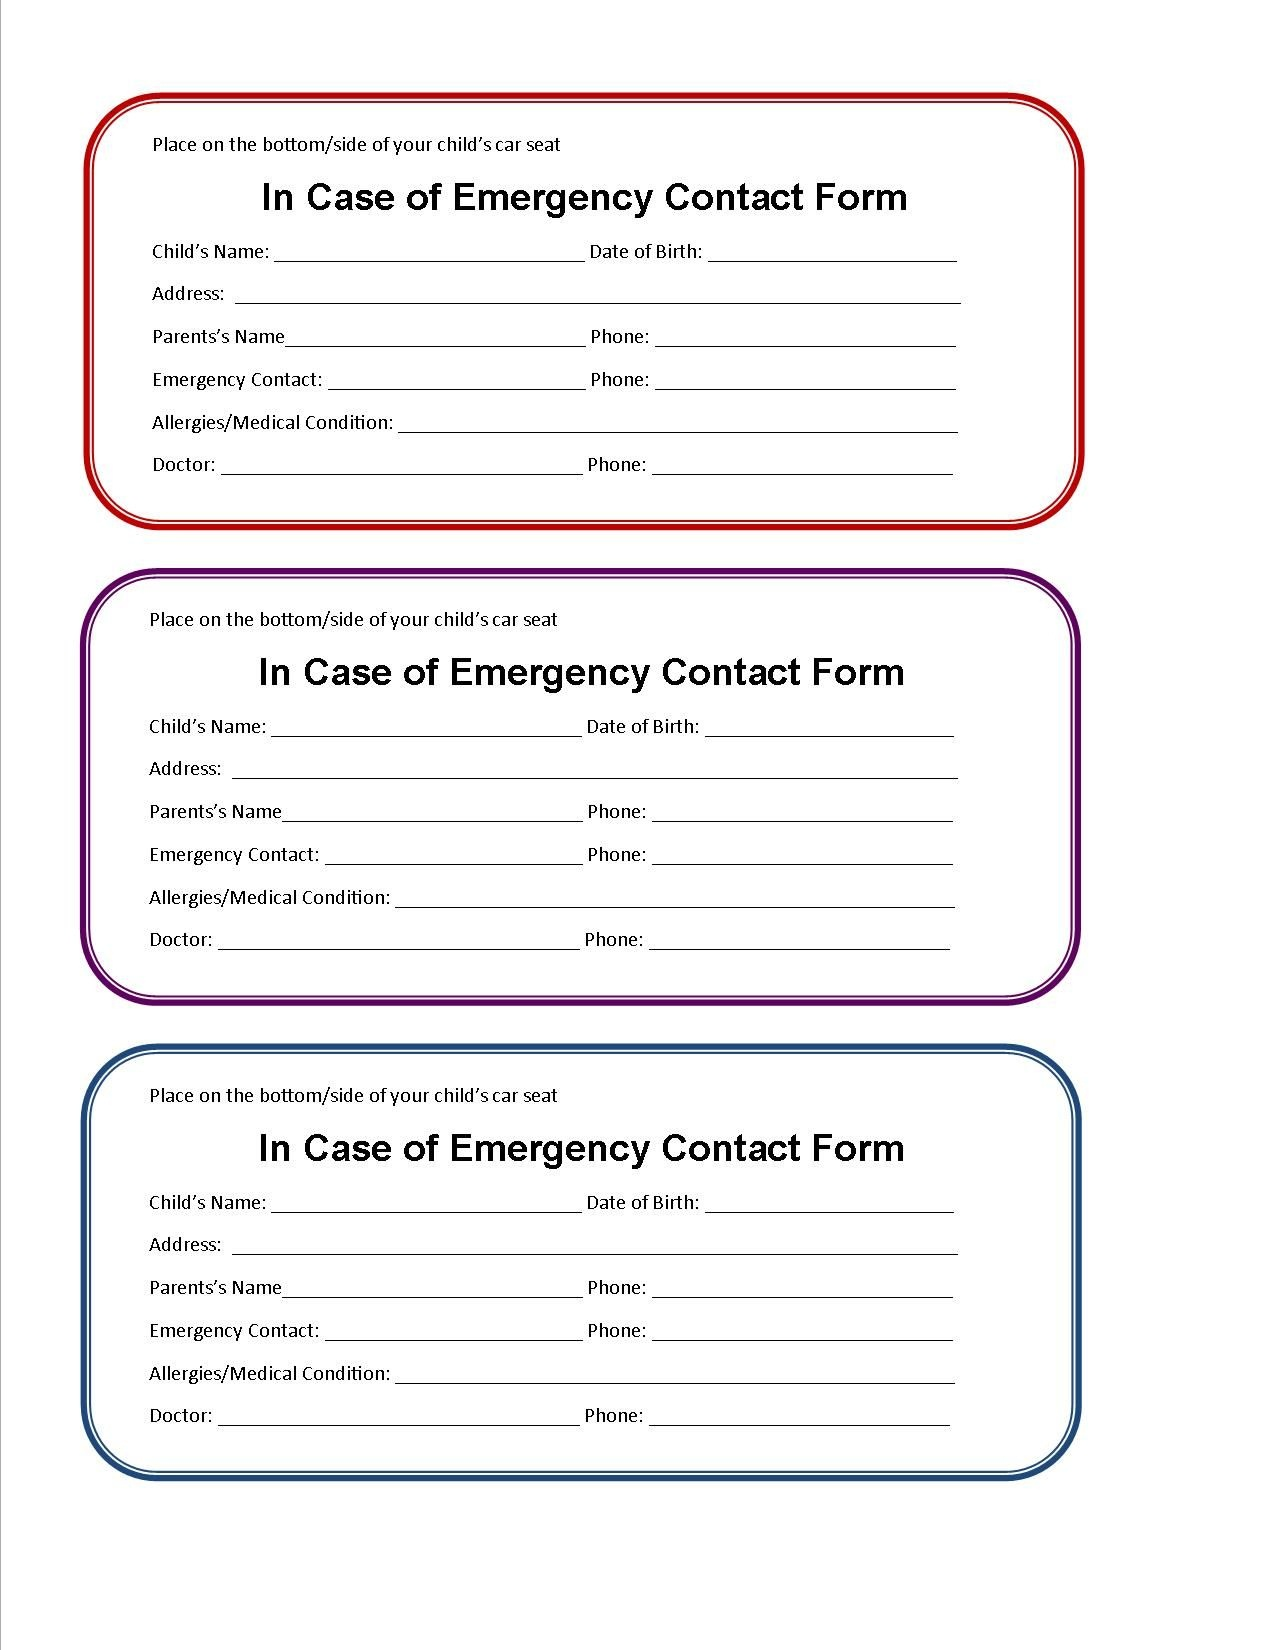 Printable Emergency Contact Form For Car Seat | Super Mom I Am - Free Printable Emergency Medical Card